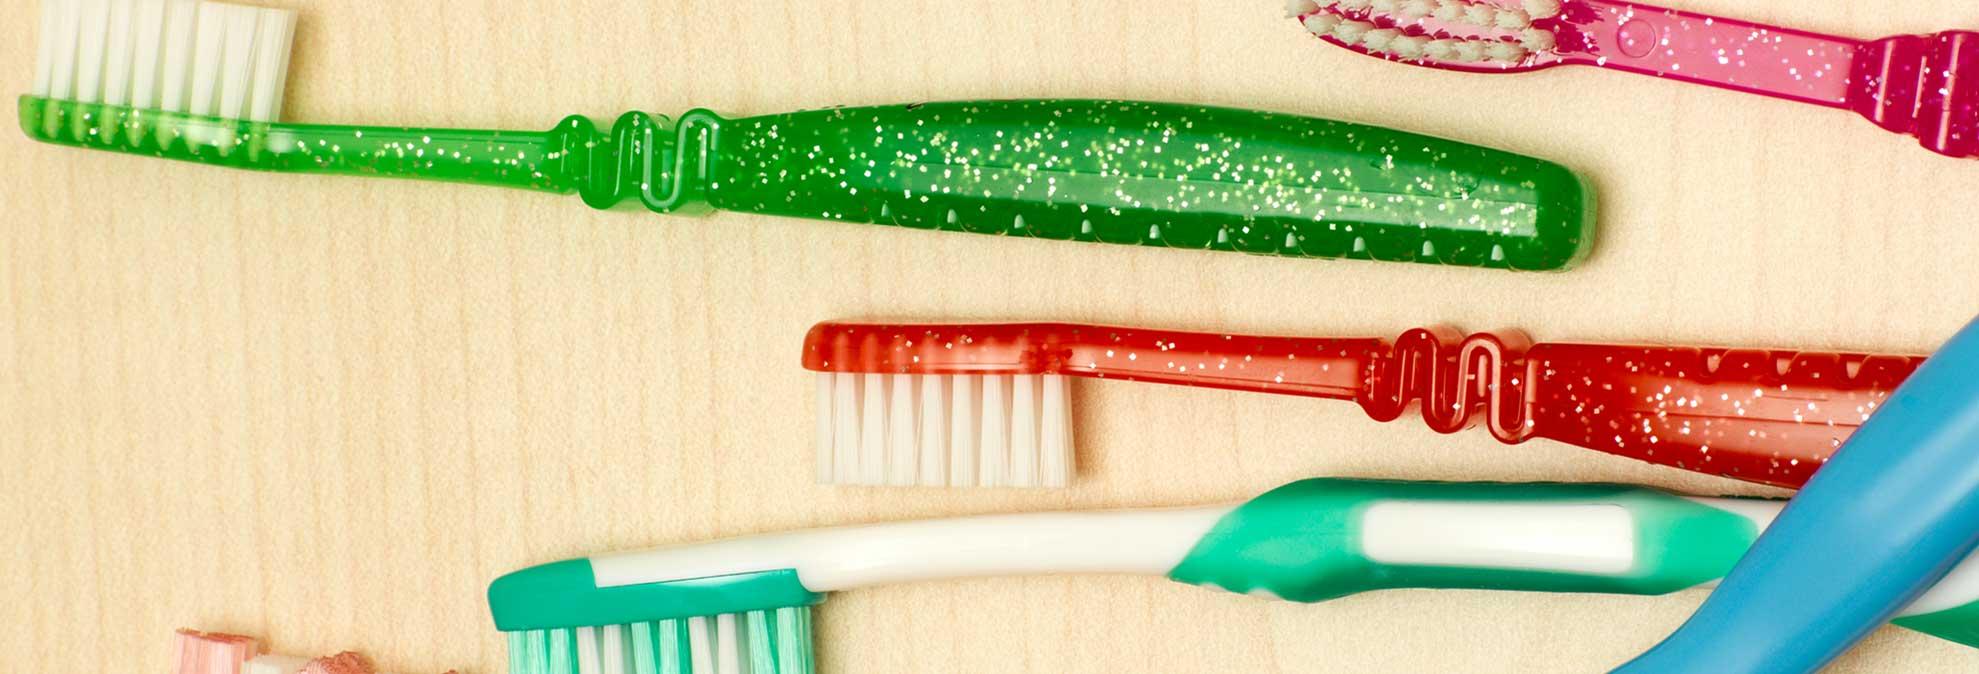 Best Toothbrush Buying Guide - Consumer Reports